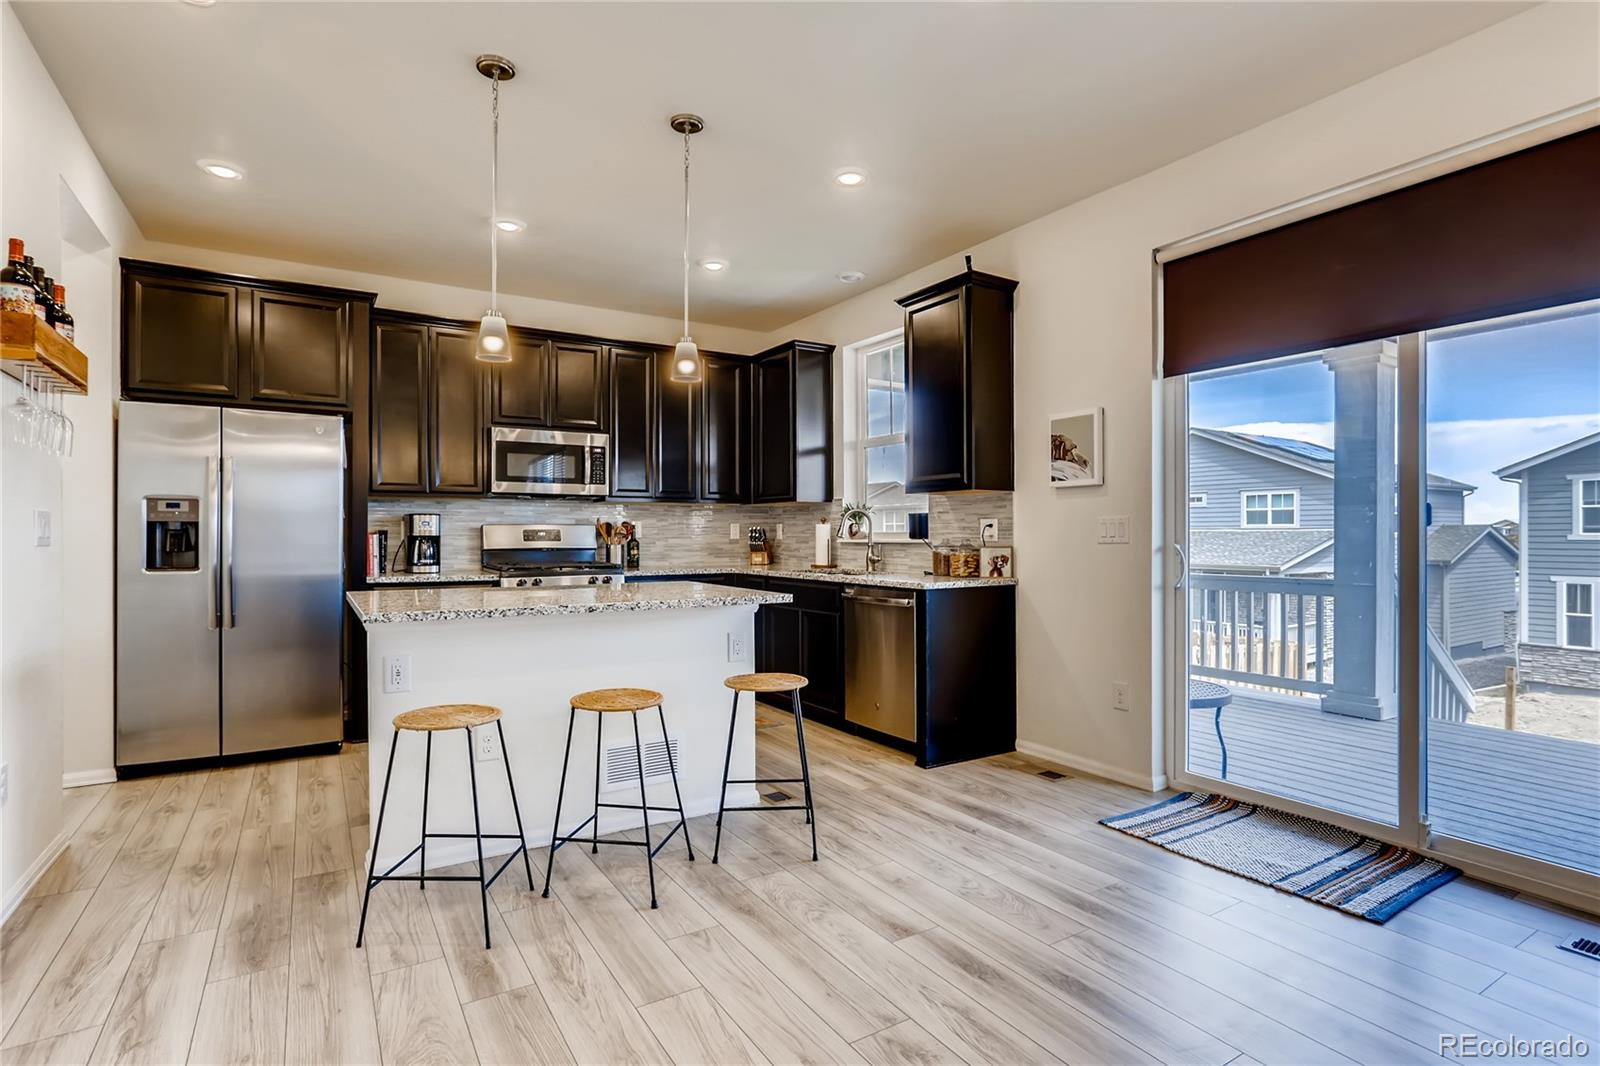 MLS# 2145354 - 9 - 26325 E Canal Place, Aurora, CO 80018